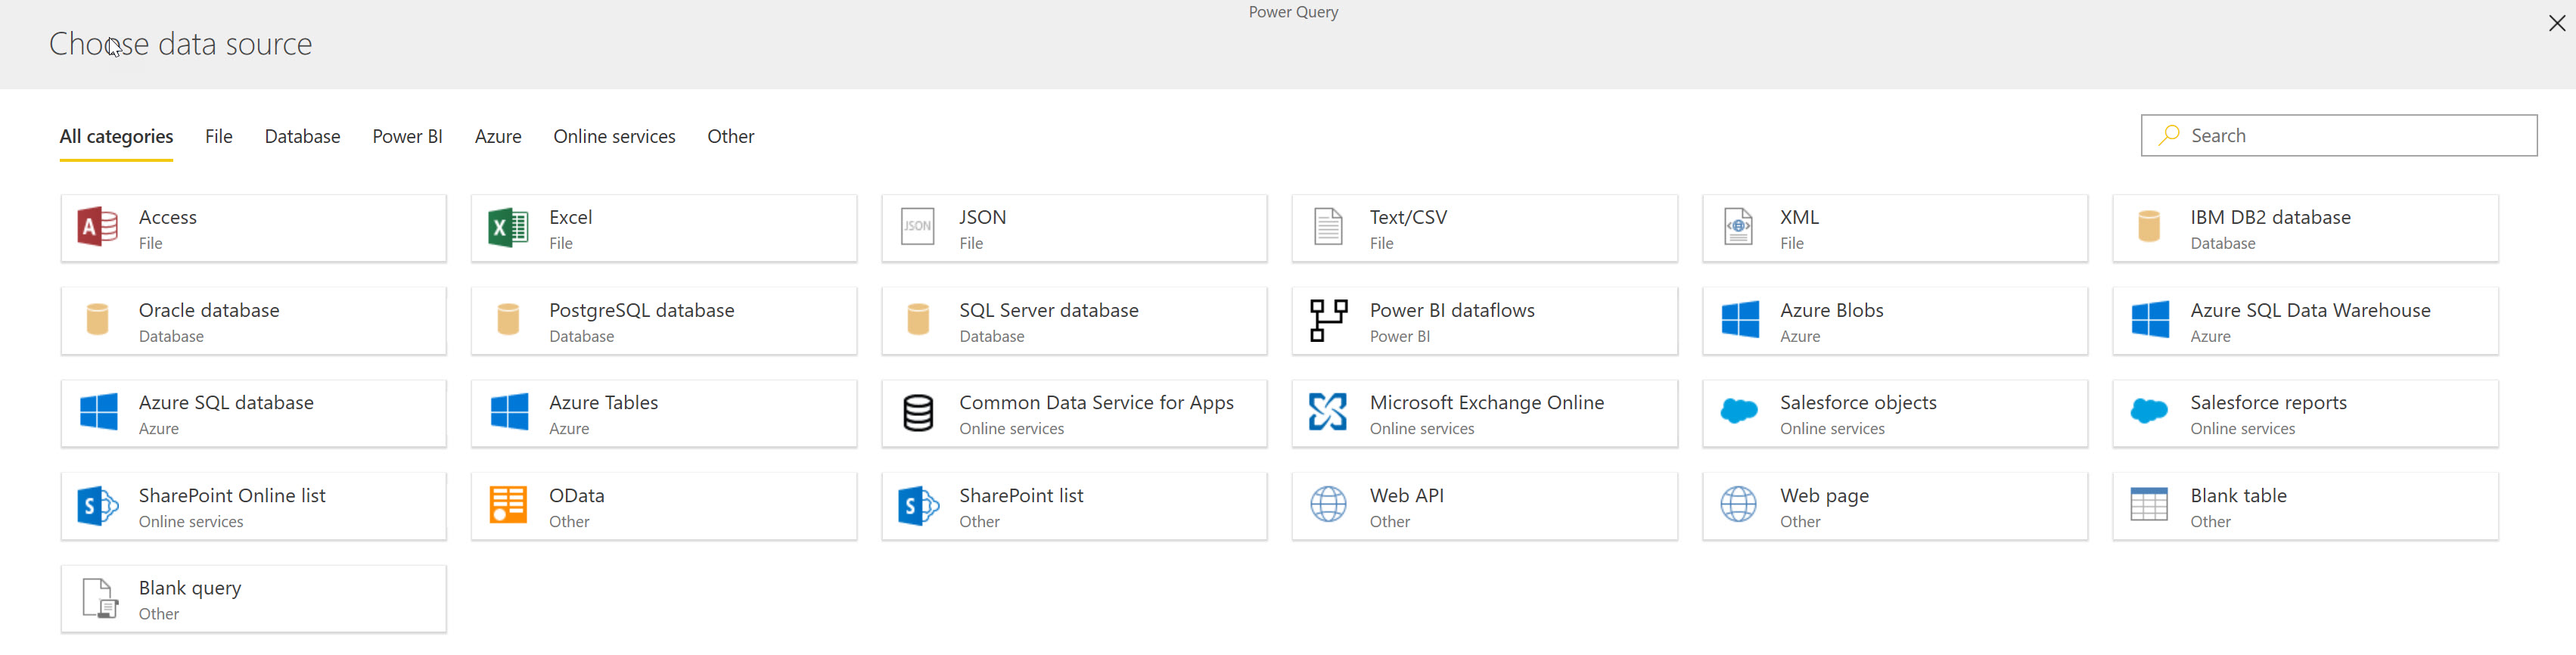 Data sources supported in dataflows - Nov 2018